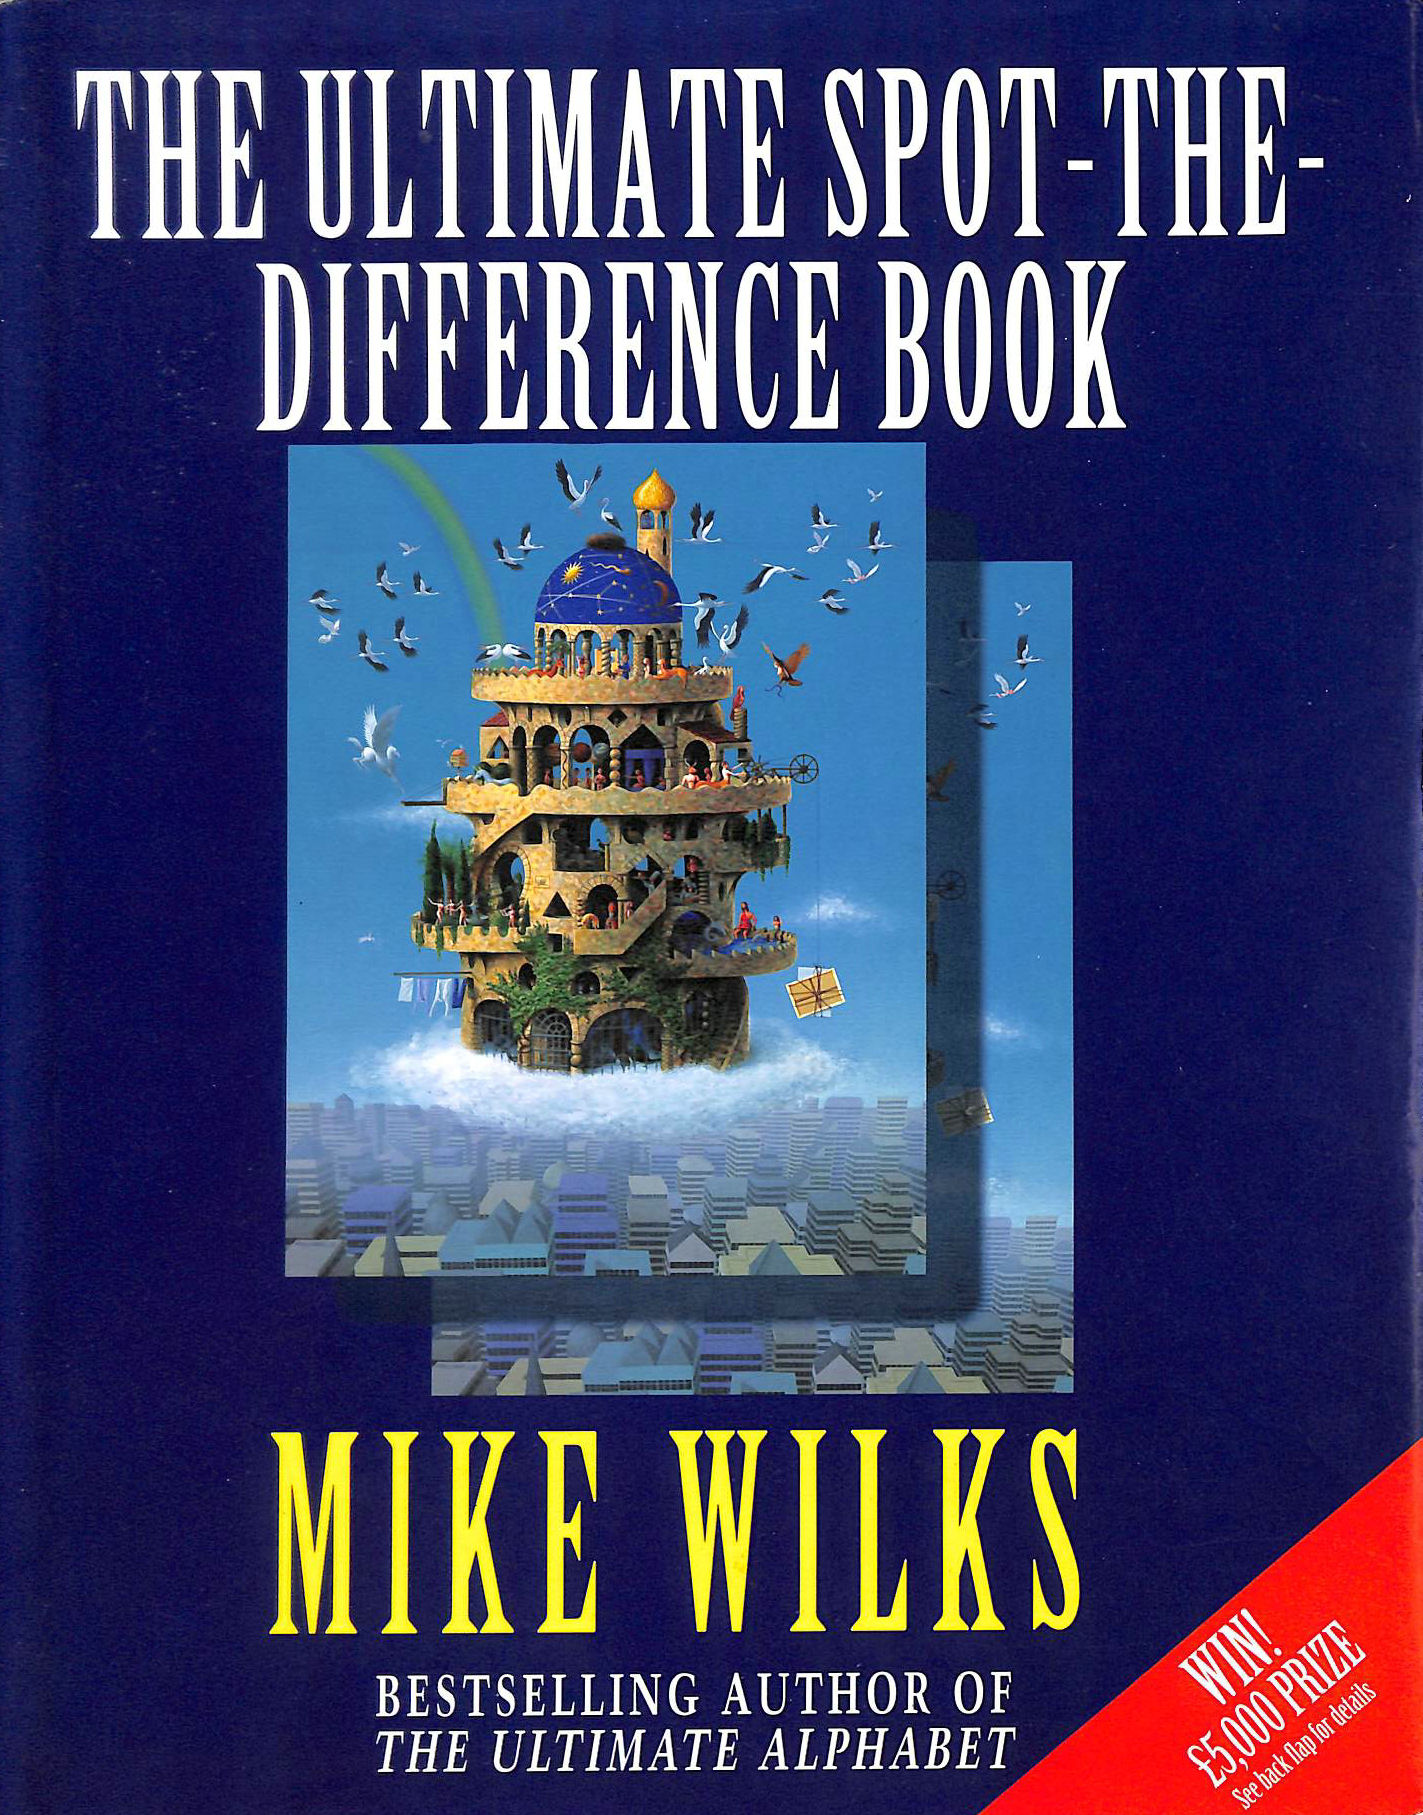 Image for The Ultimate Spot-the-Difference Book (Penguin Studio Books)